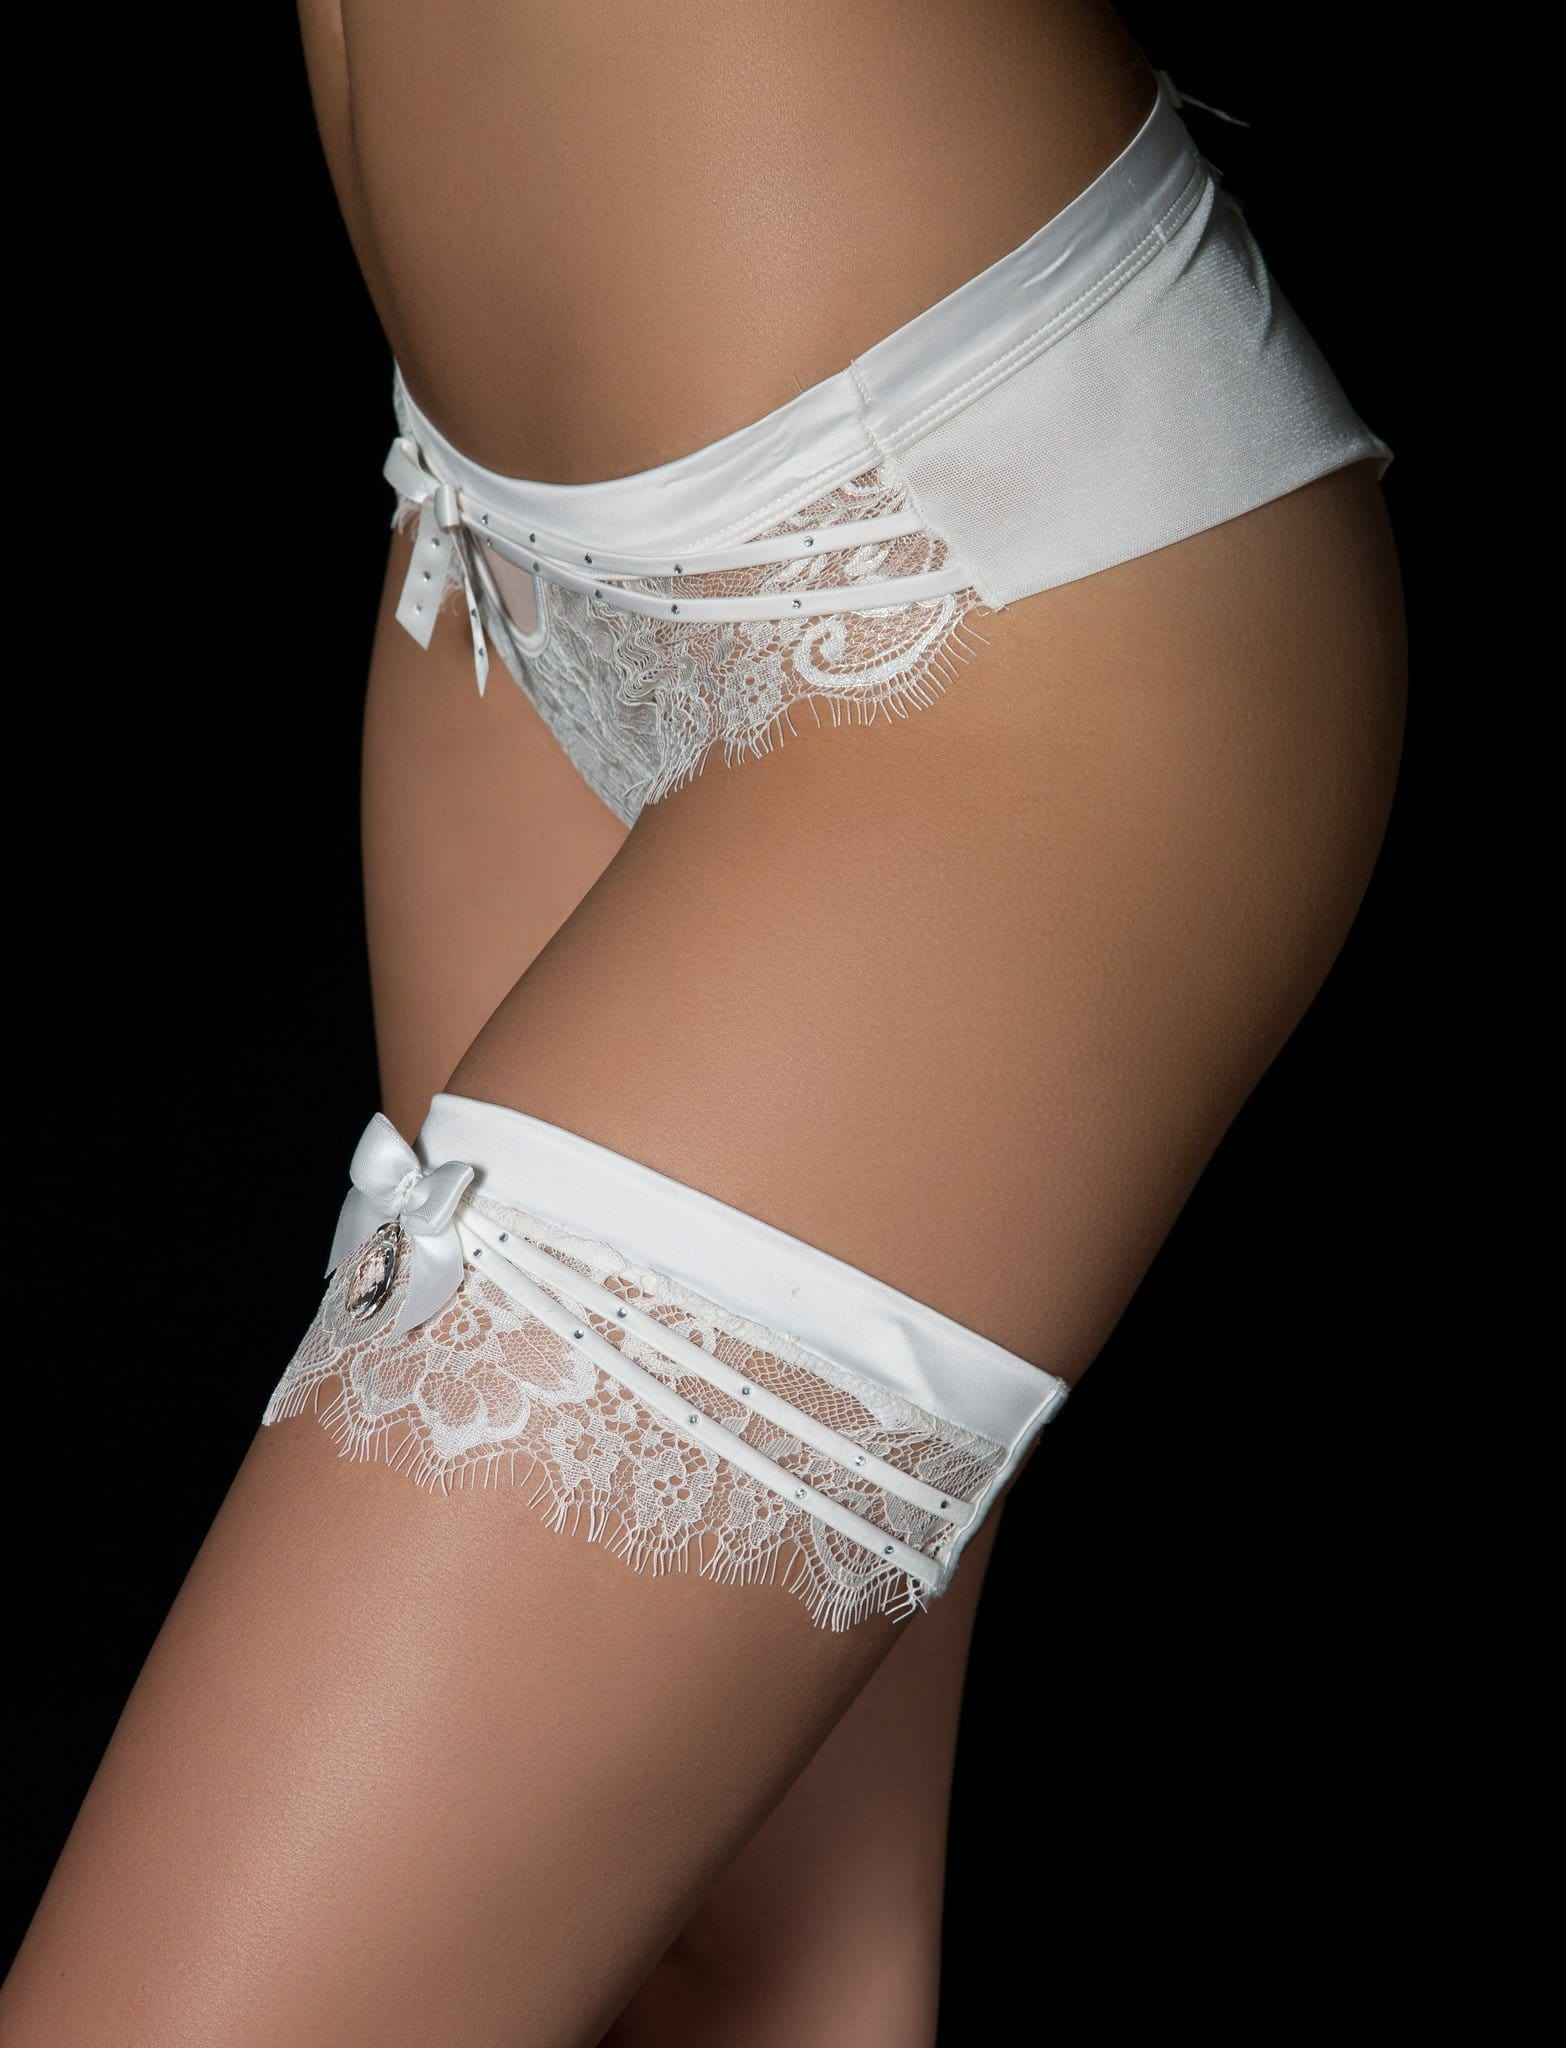 Madame Lace Bridal Garter - Accessories - Honey Birdette Australia